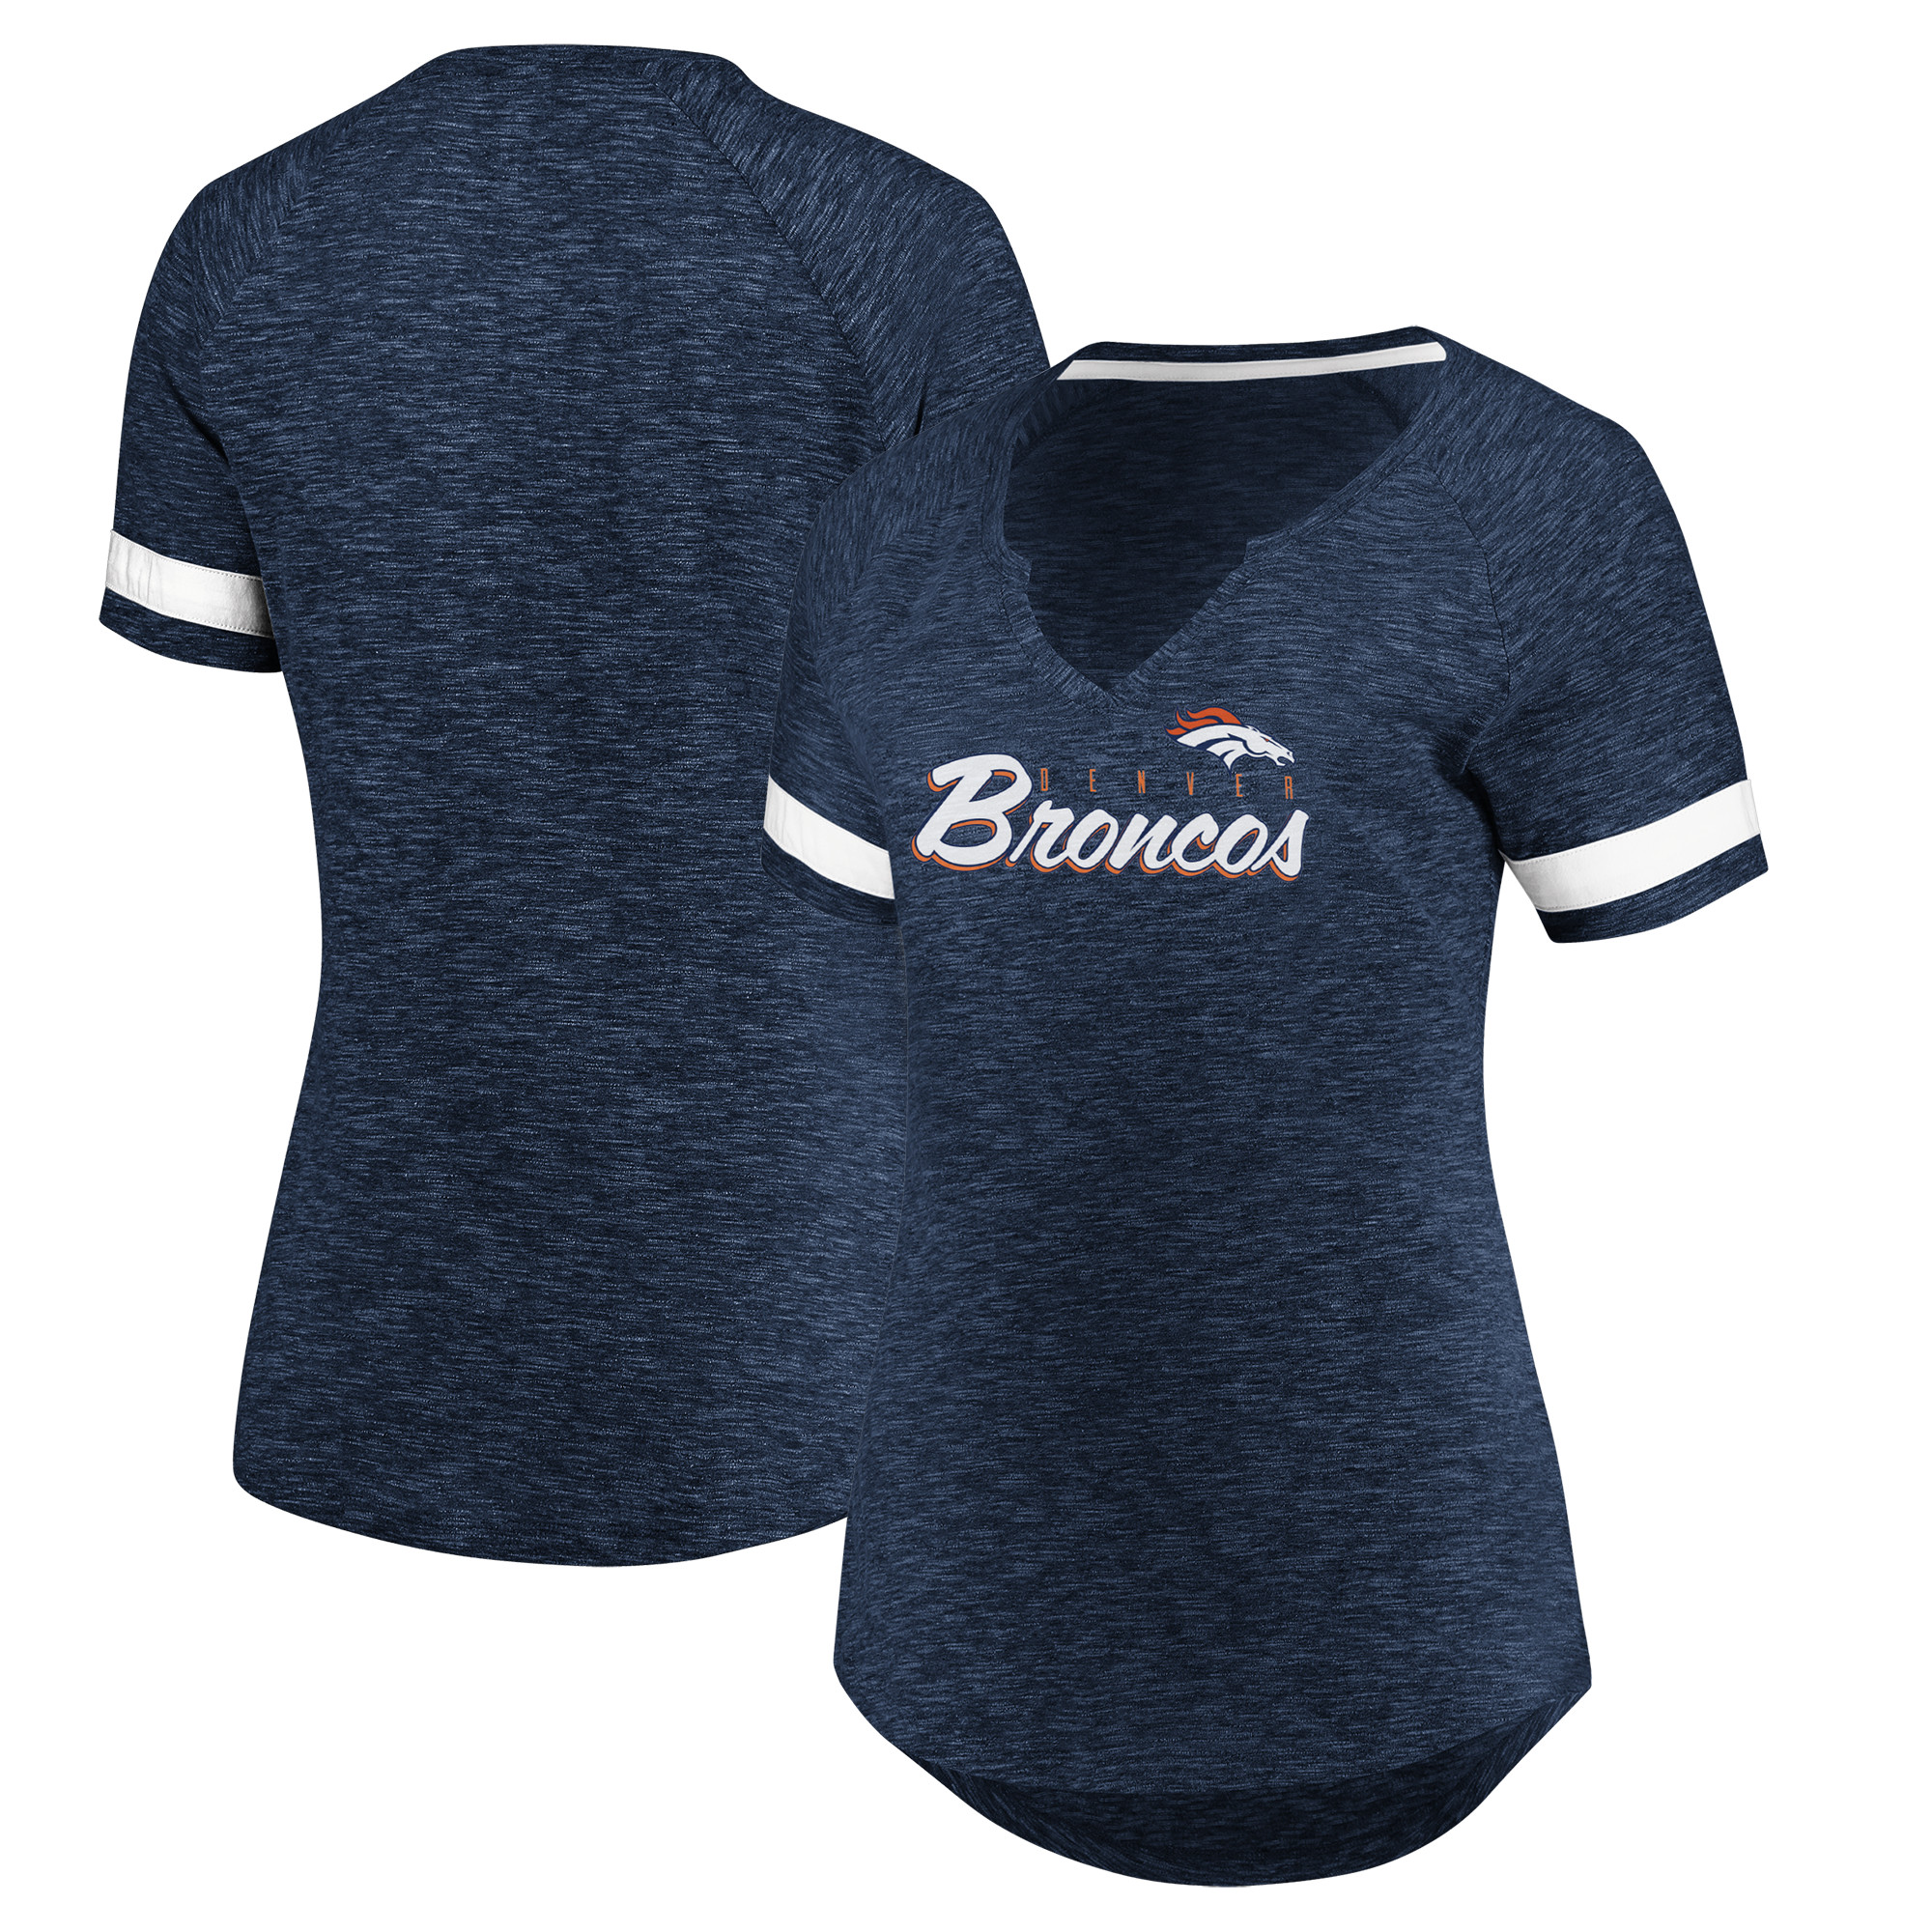 Denver Broncos Majestic Women's Through Thick or Thin V-Notch T-Shirt - Navy